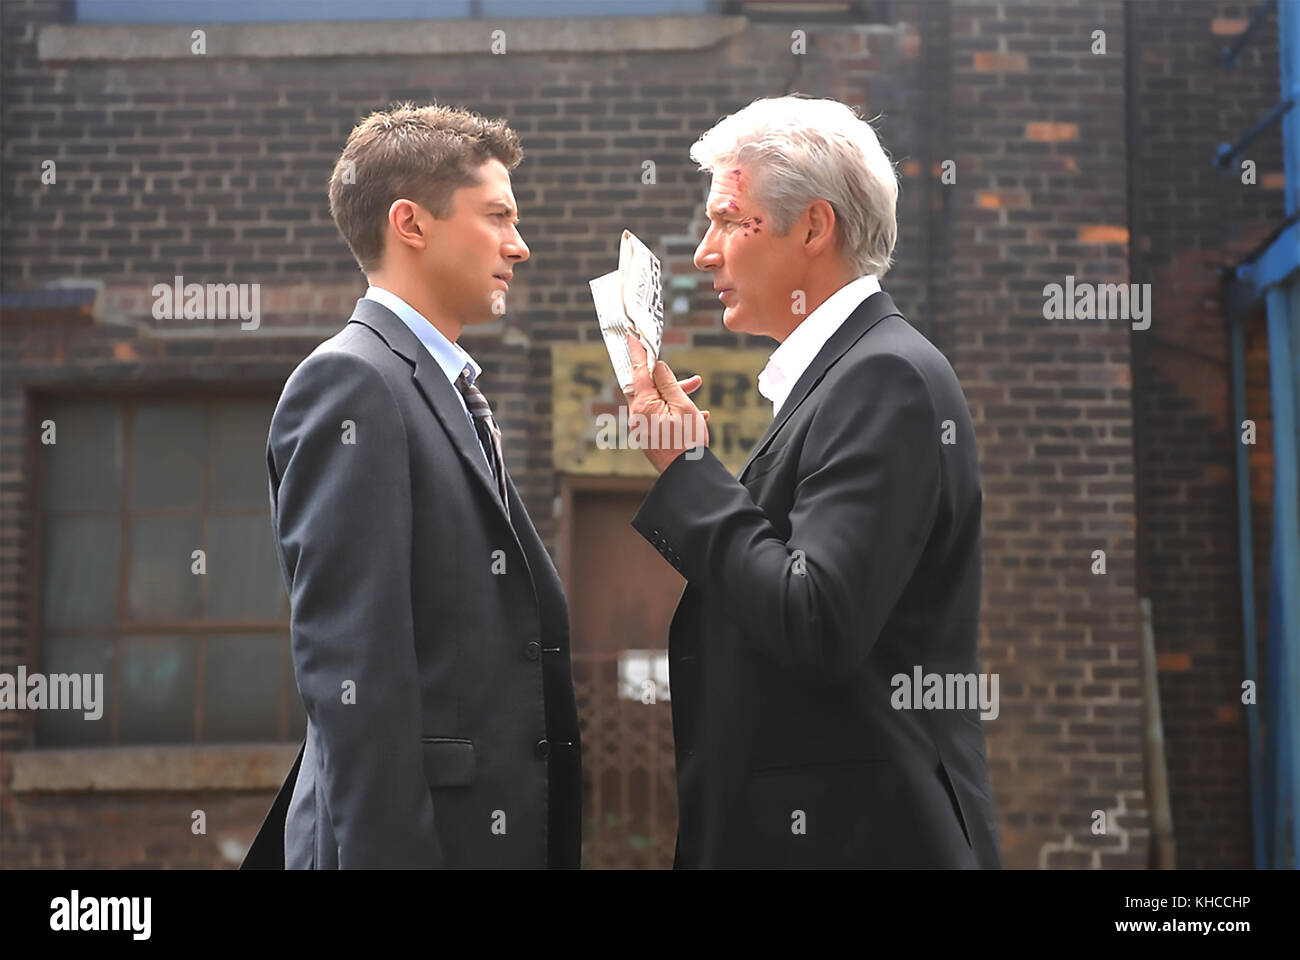 THE DOUBLE 2011 Hyde Park Entertainment  film with Richard Geere at right and Topher Grace - Stock Image